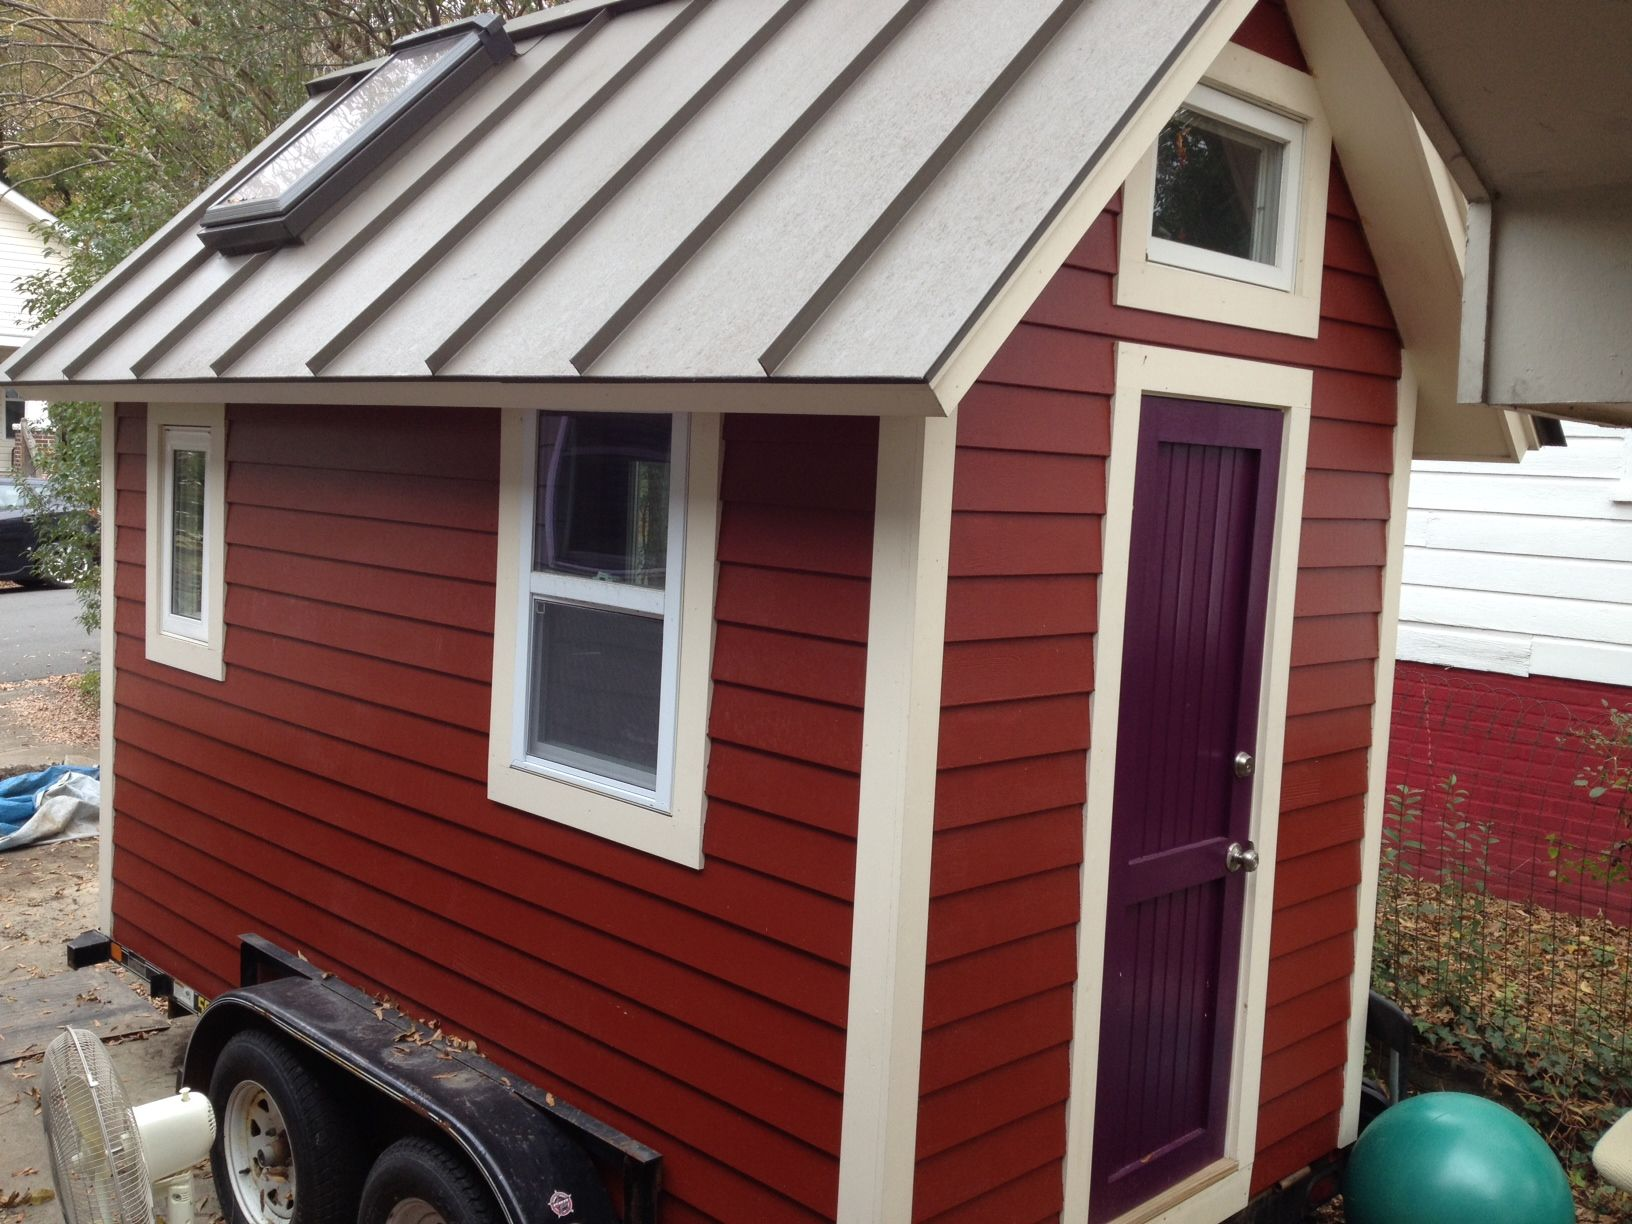 6 u2032 x 12 u2032 tiny house or office on a trailer for sale in durham rh pinterest com